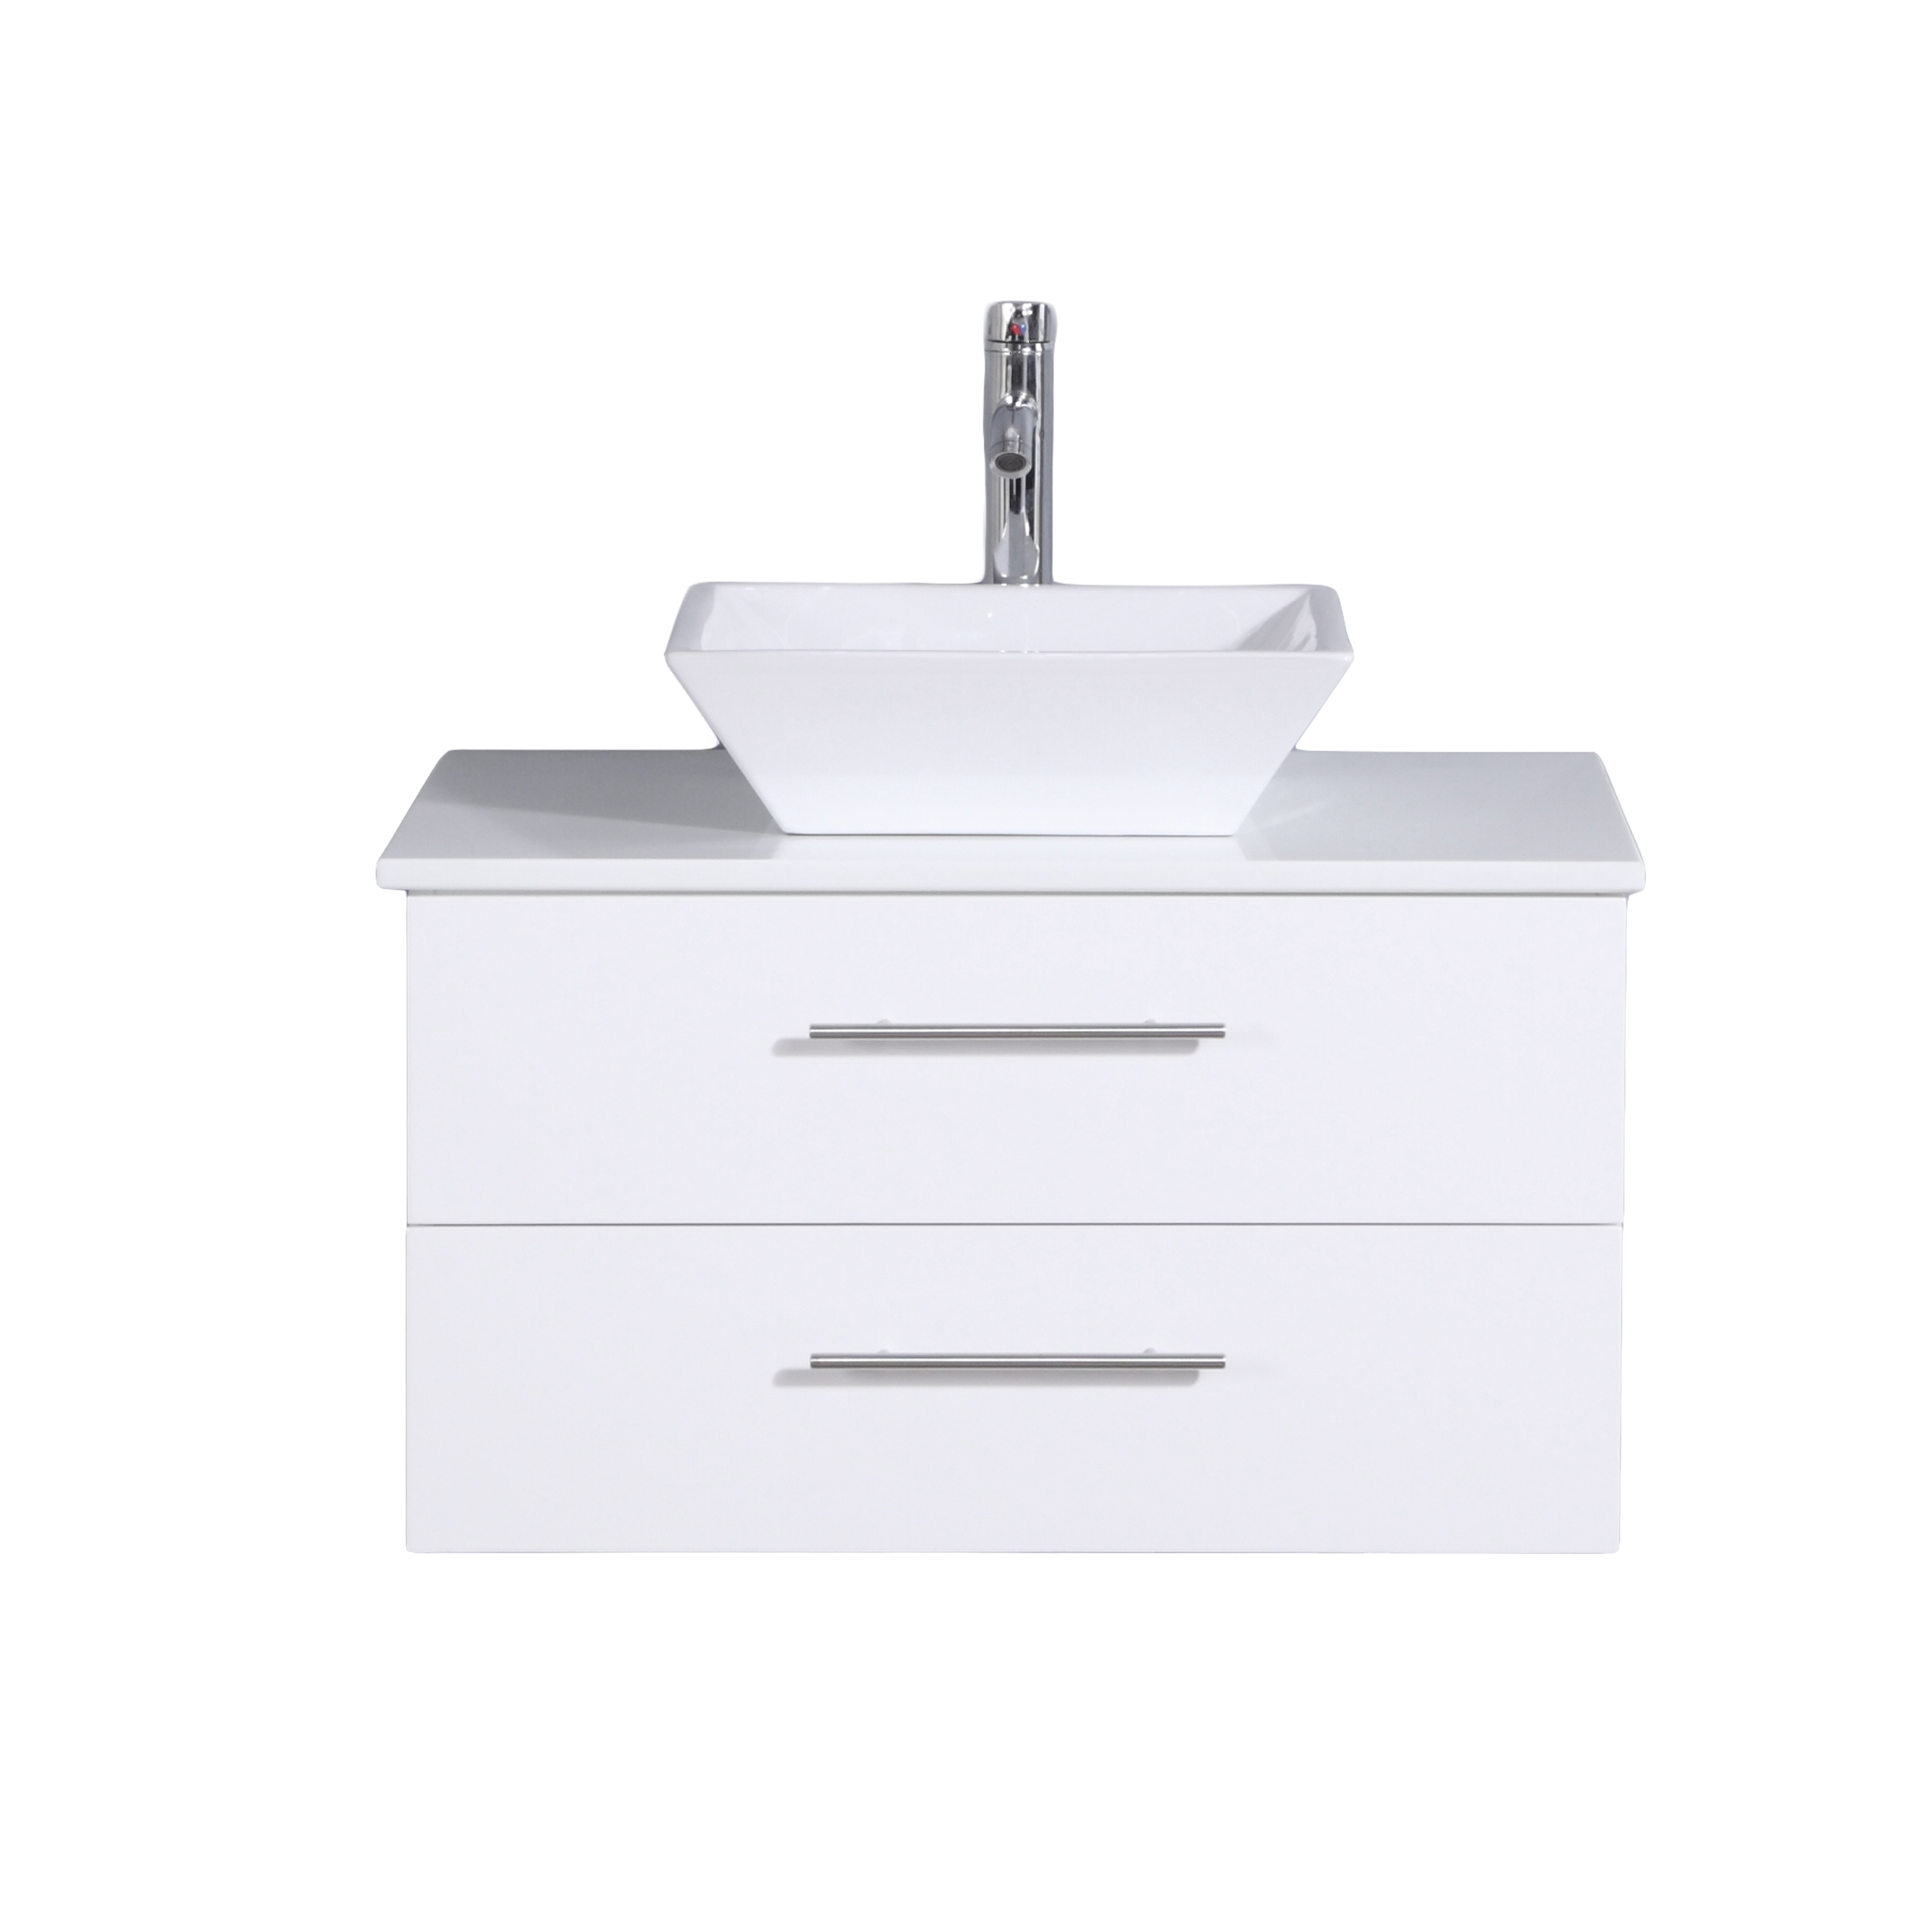 photos discount large vanity full dual sink size com htsrec bathroom top inch new of